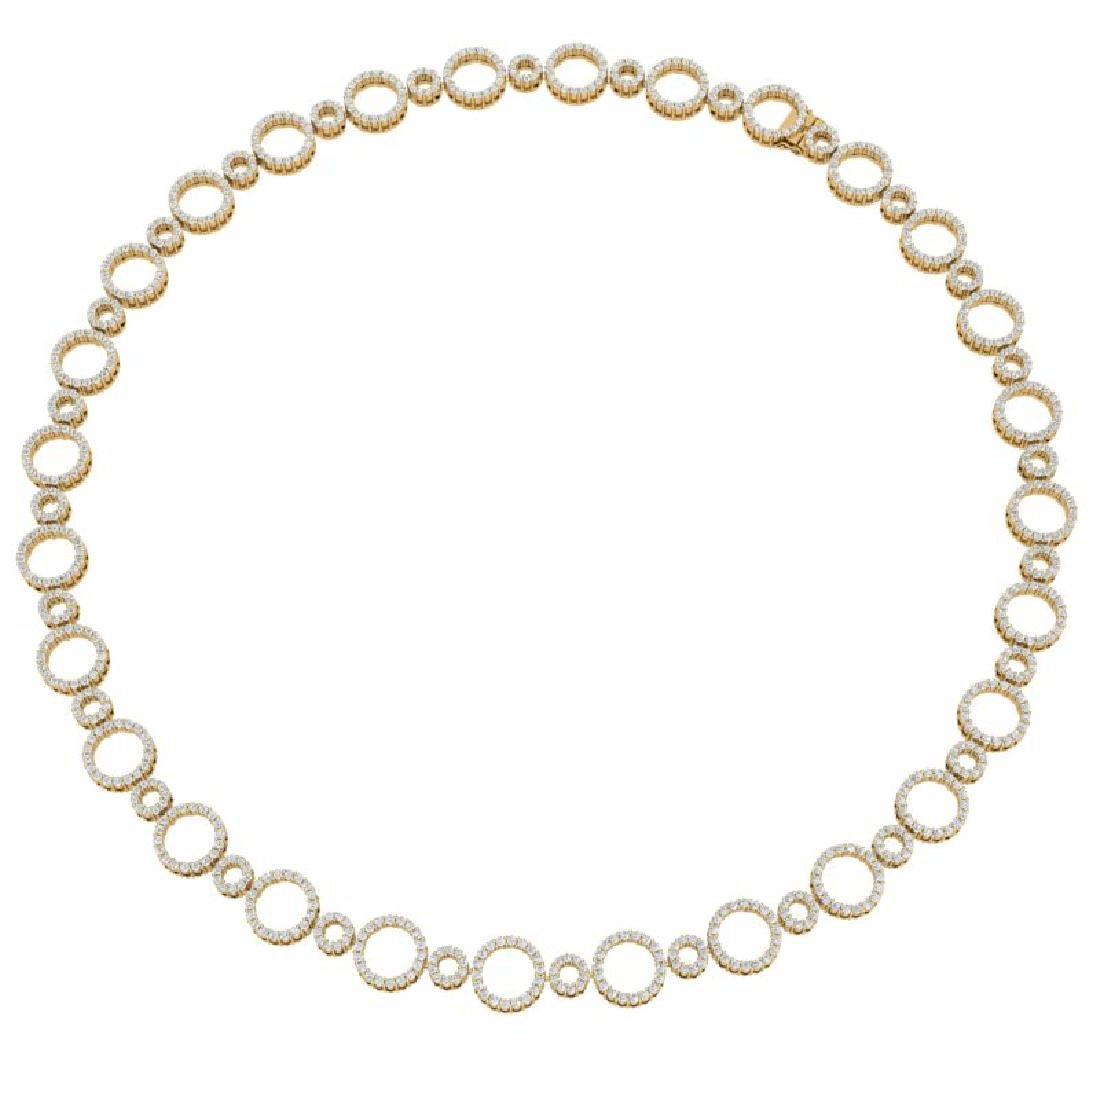 10 CTW Certified SI/I Diamond Halo Necklace 18K Yellow - 3